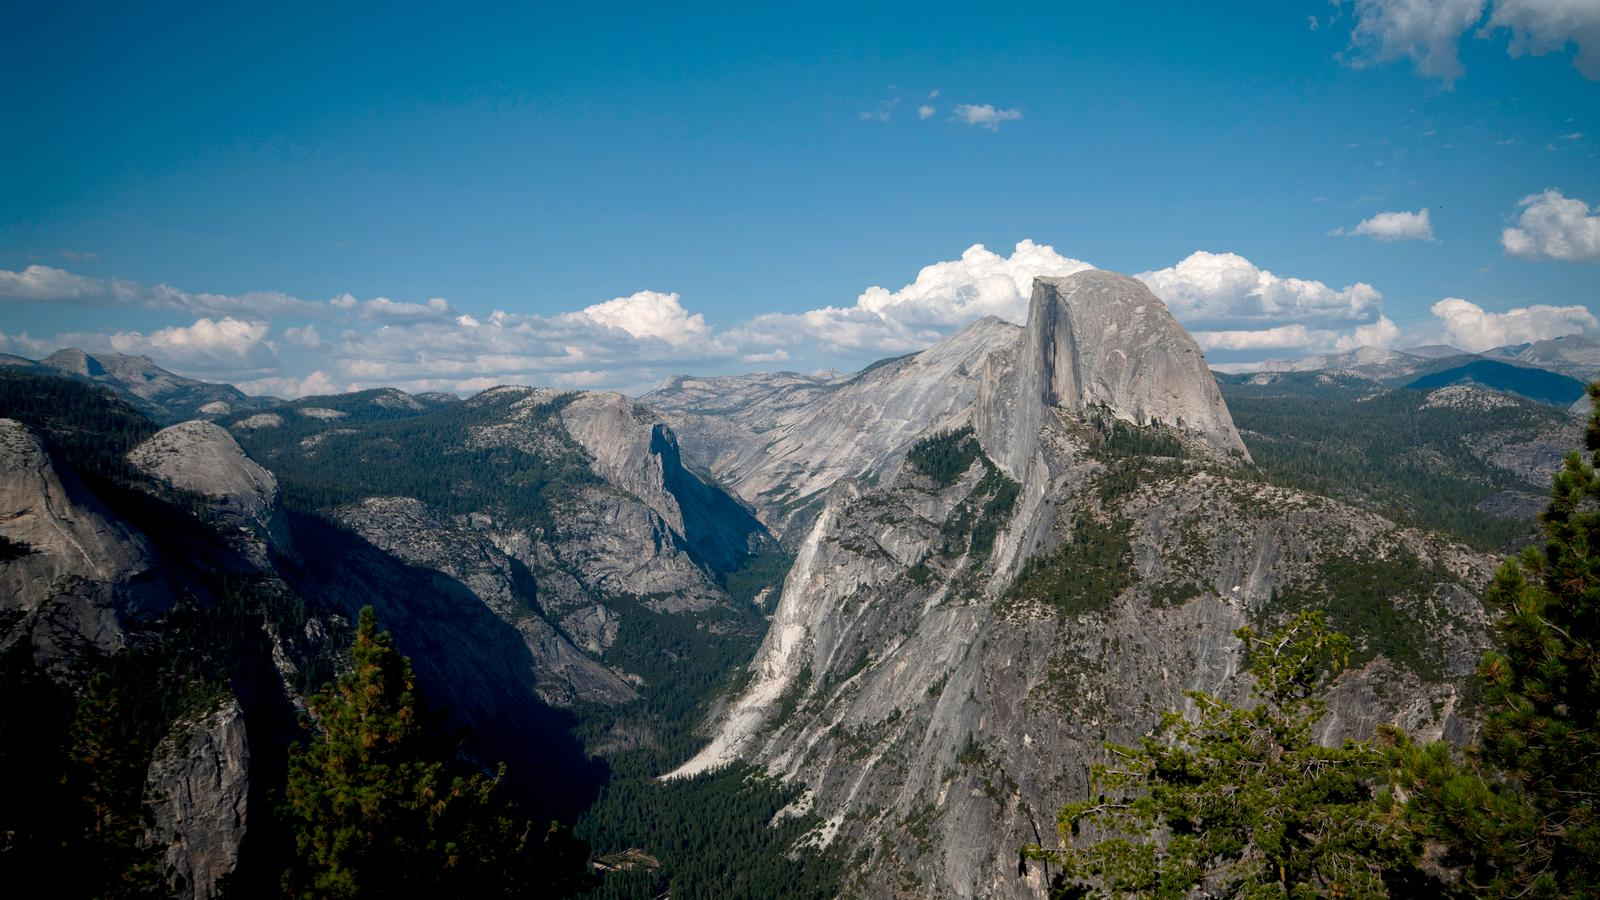 Natural Highlights of California in United States, North America - G